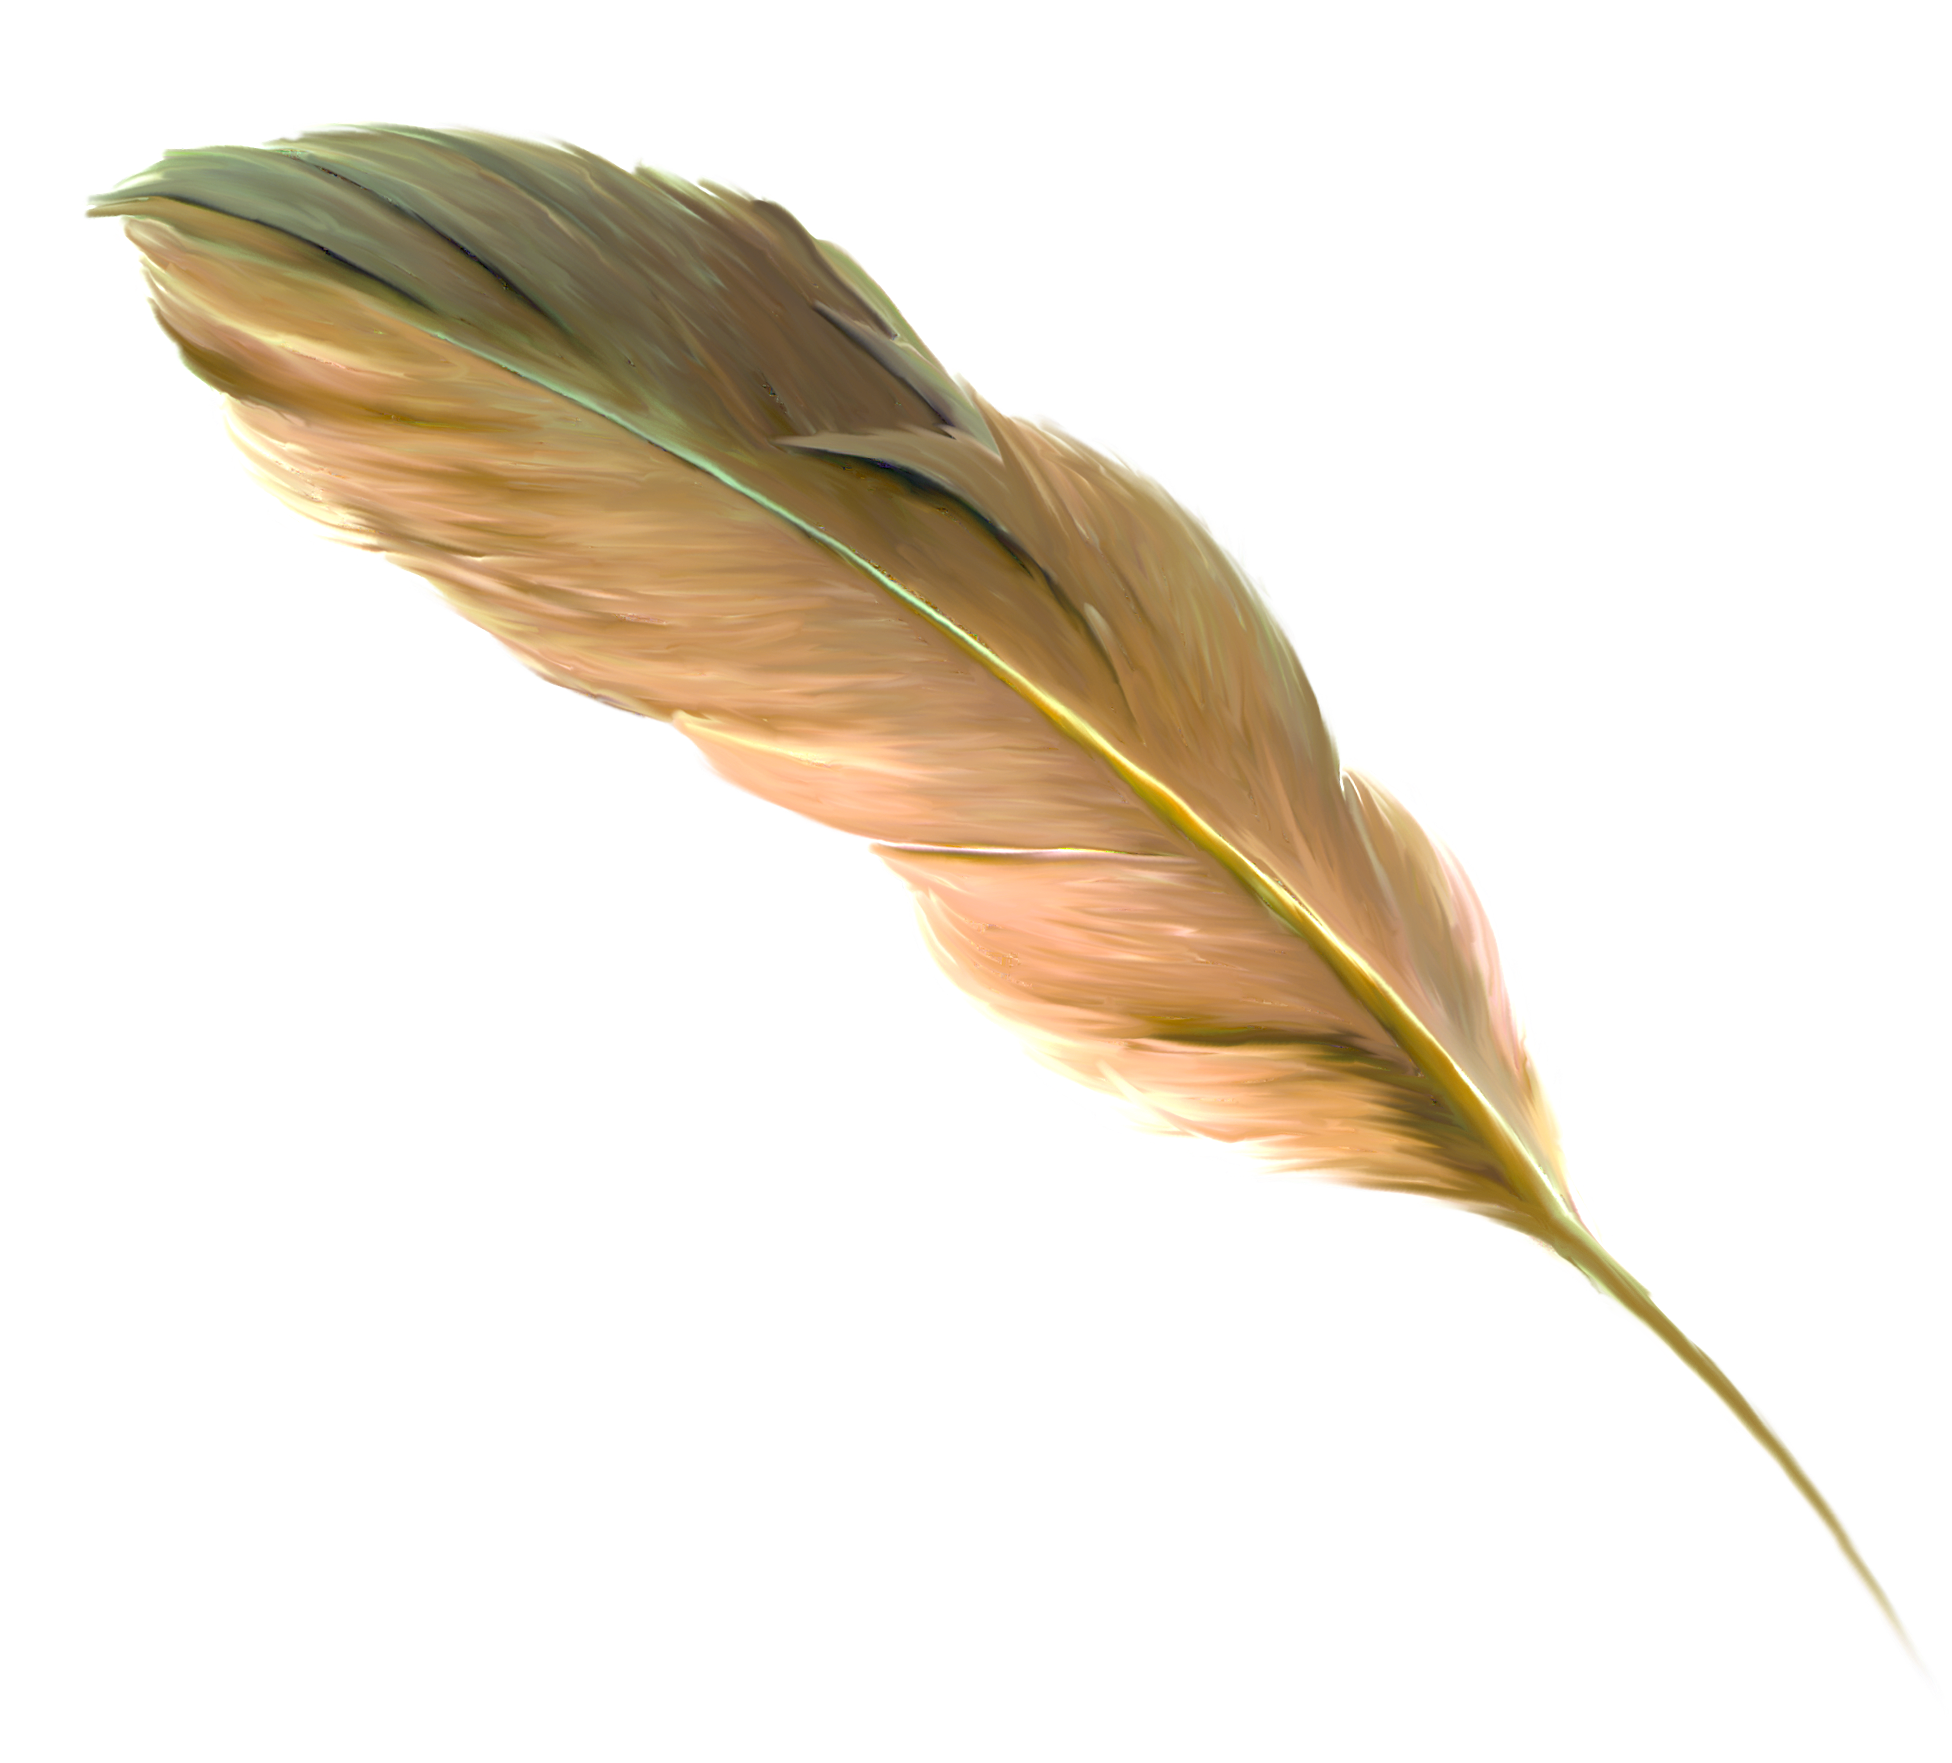 Floating feathers png. The feather brown transprent